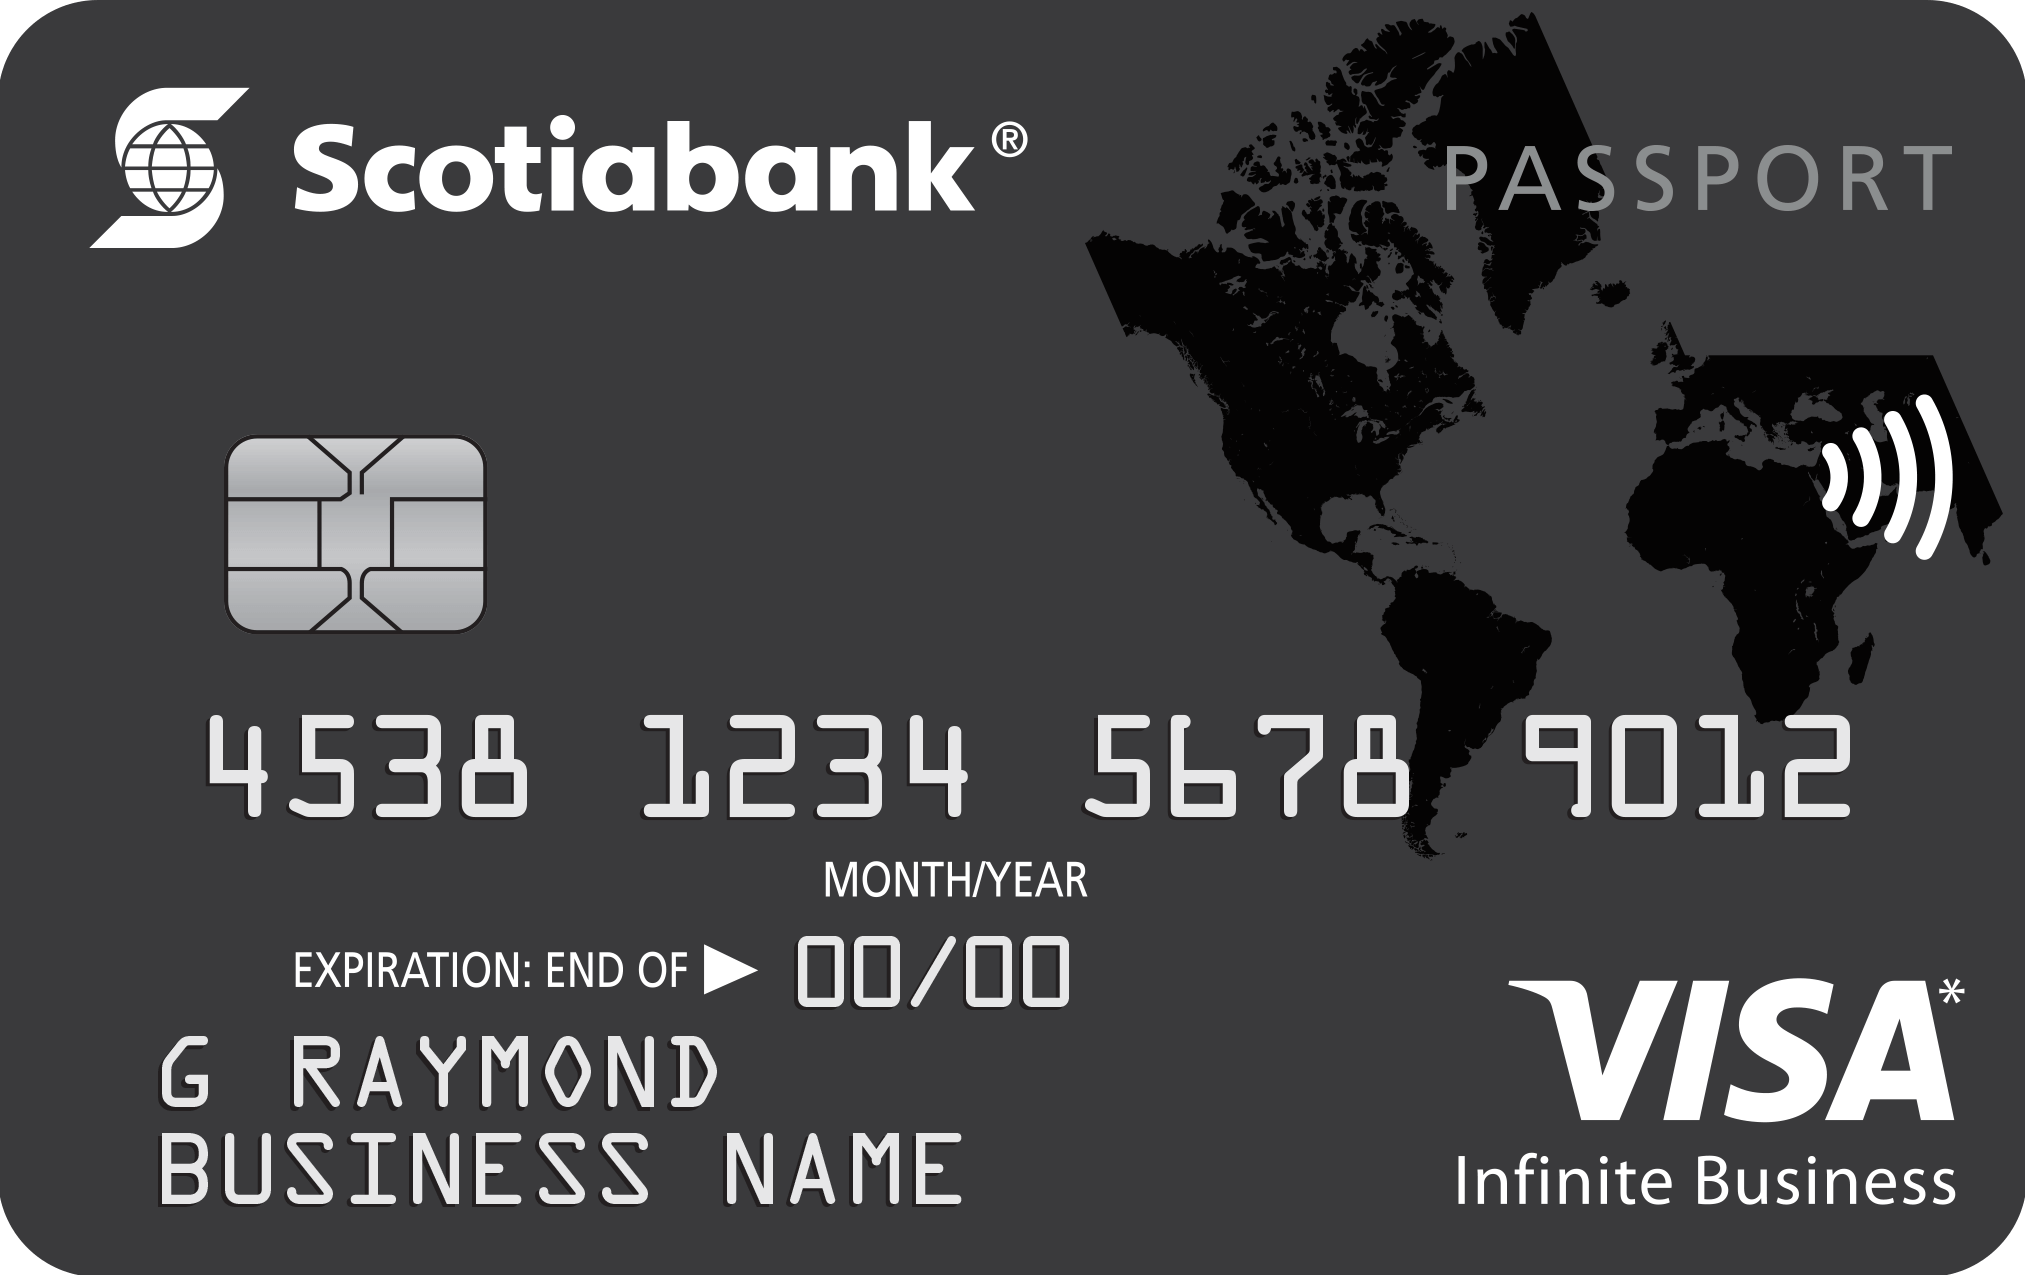 NEW Scotiabank Passport™ Visa Infinite Business* Card